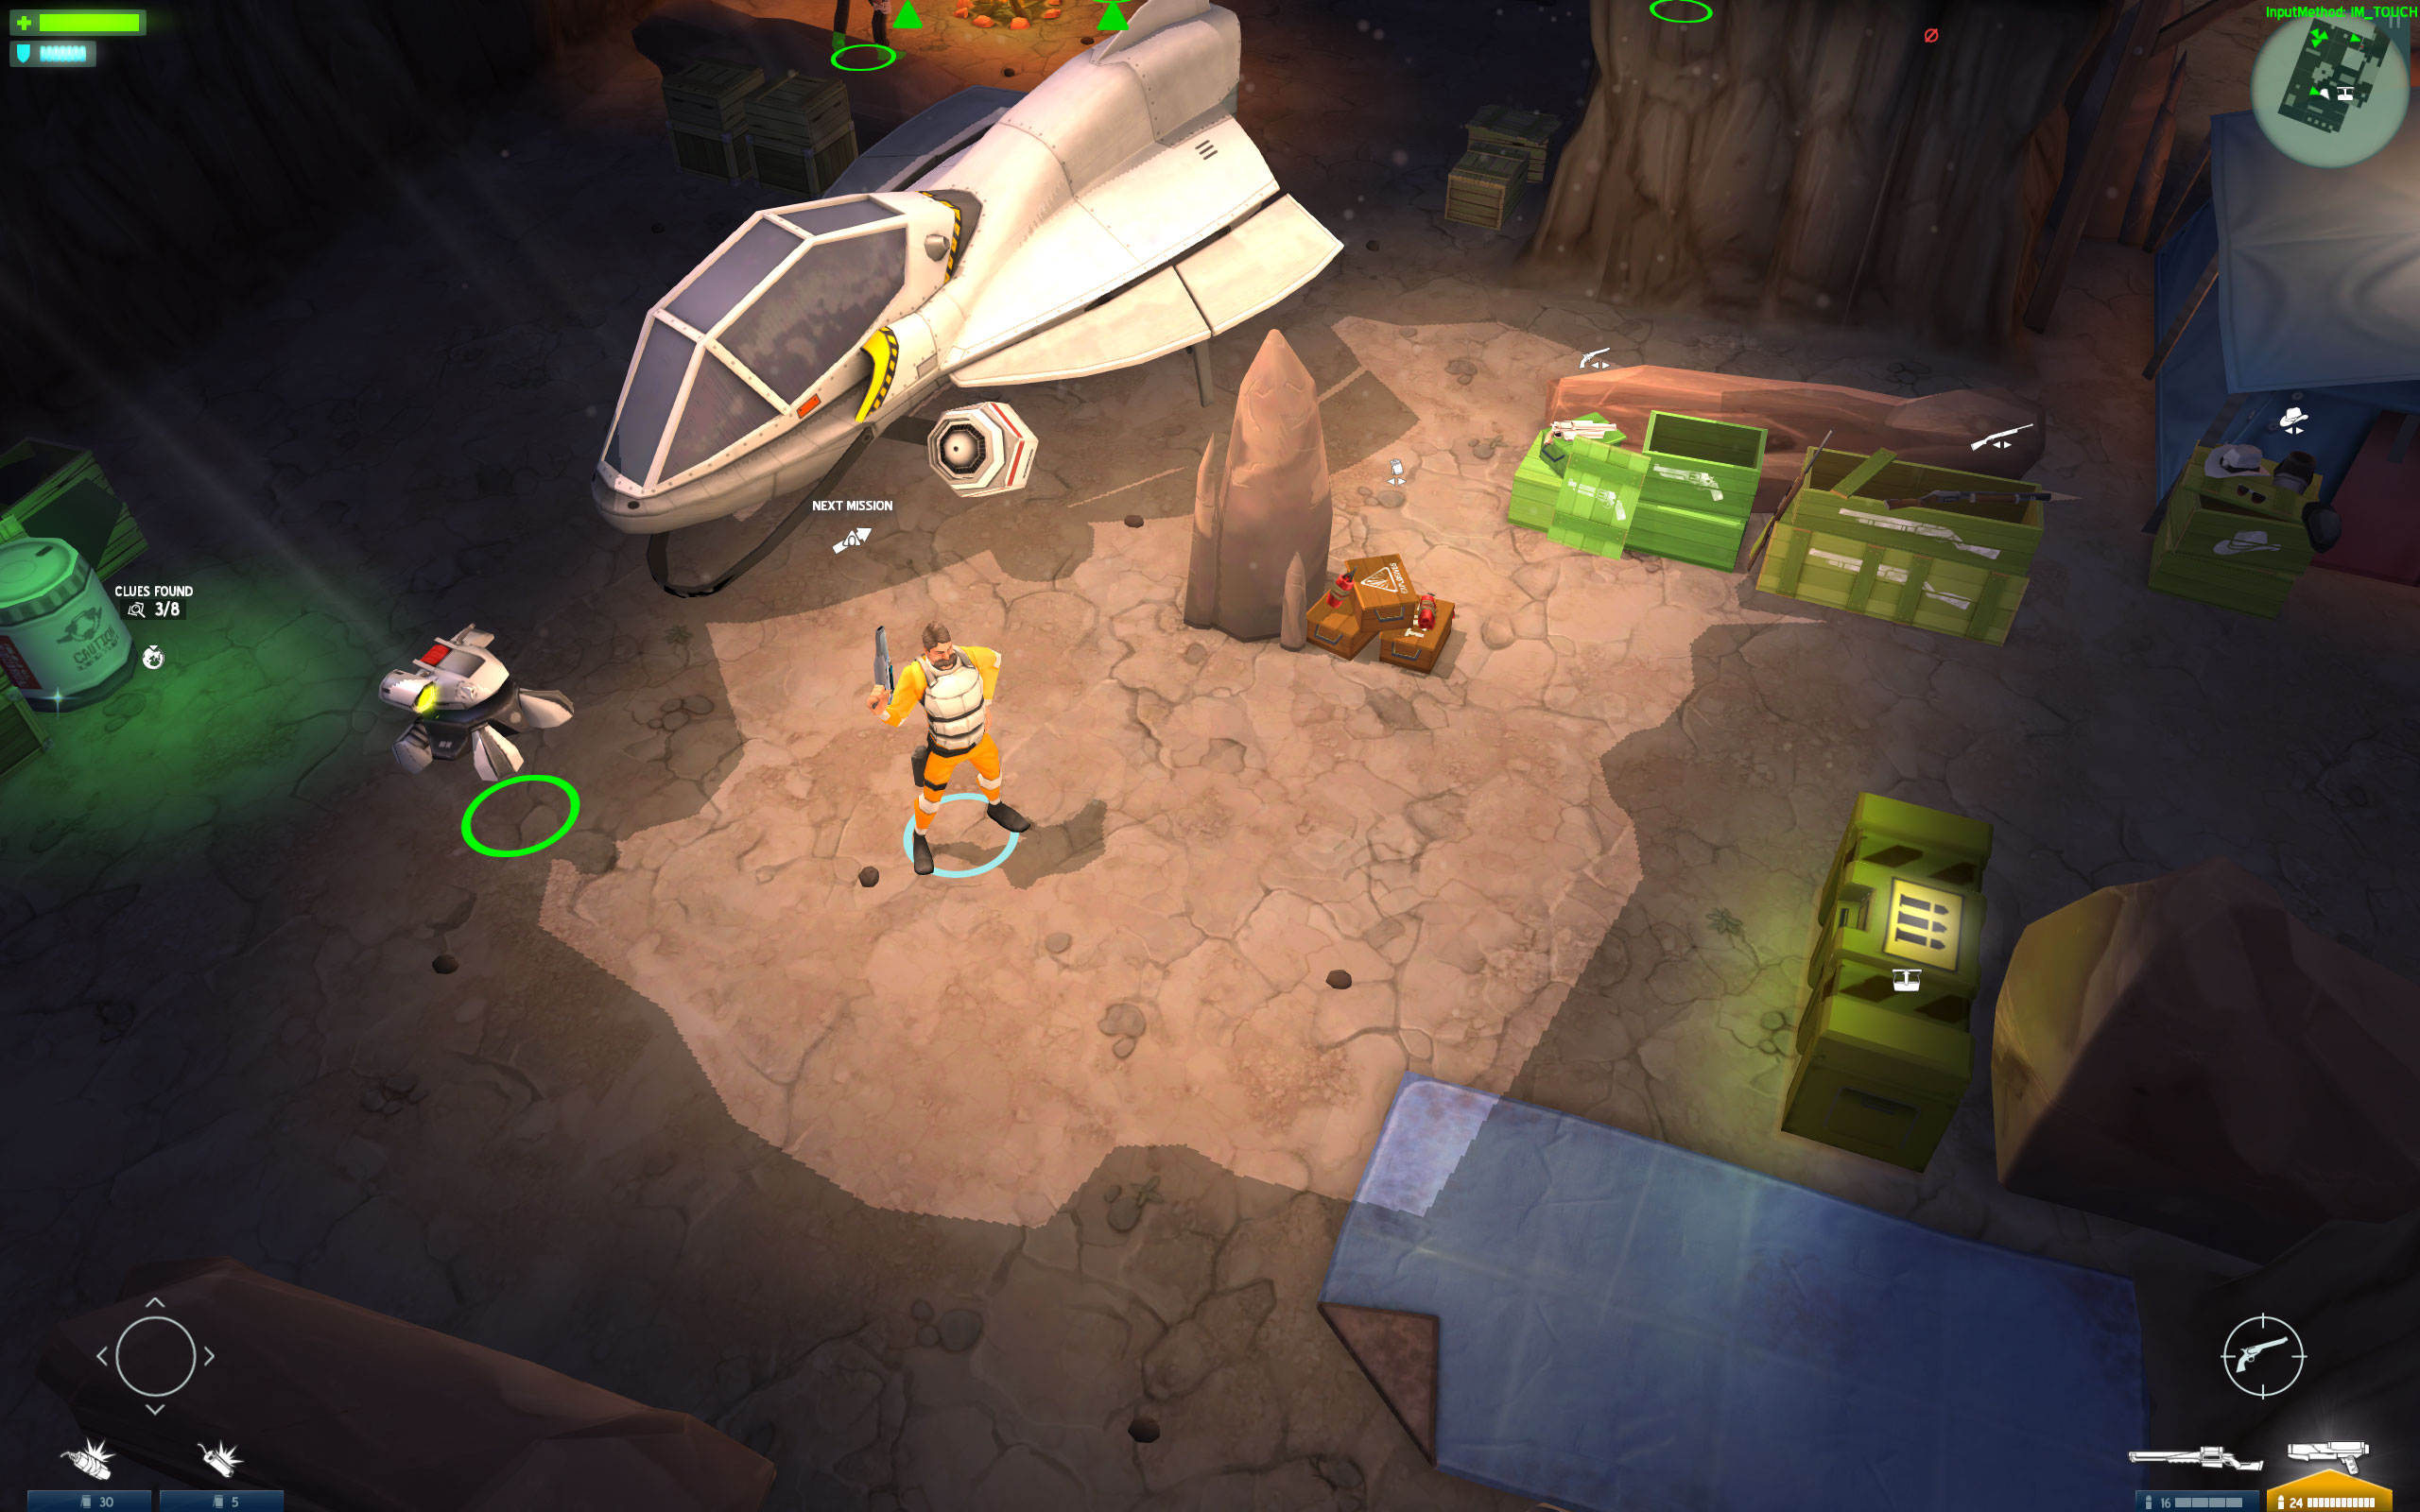 Tactical sci-fi shooter Space Marshals gets infested with bugs in Chapter 2, out now